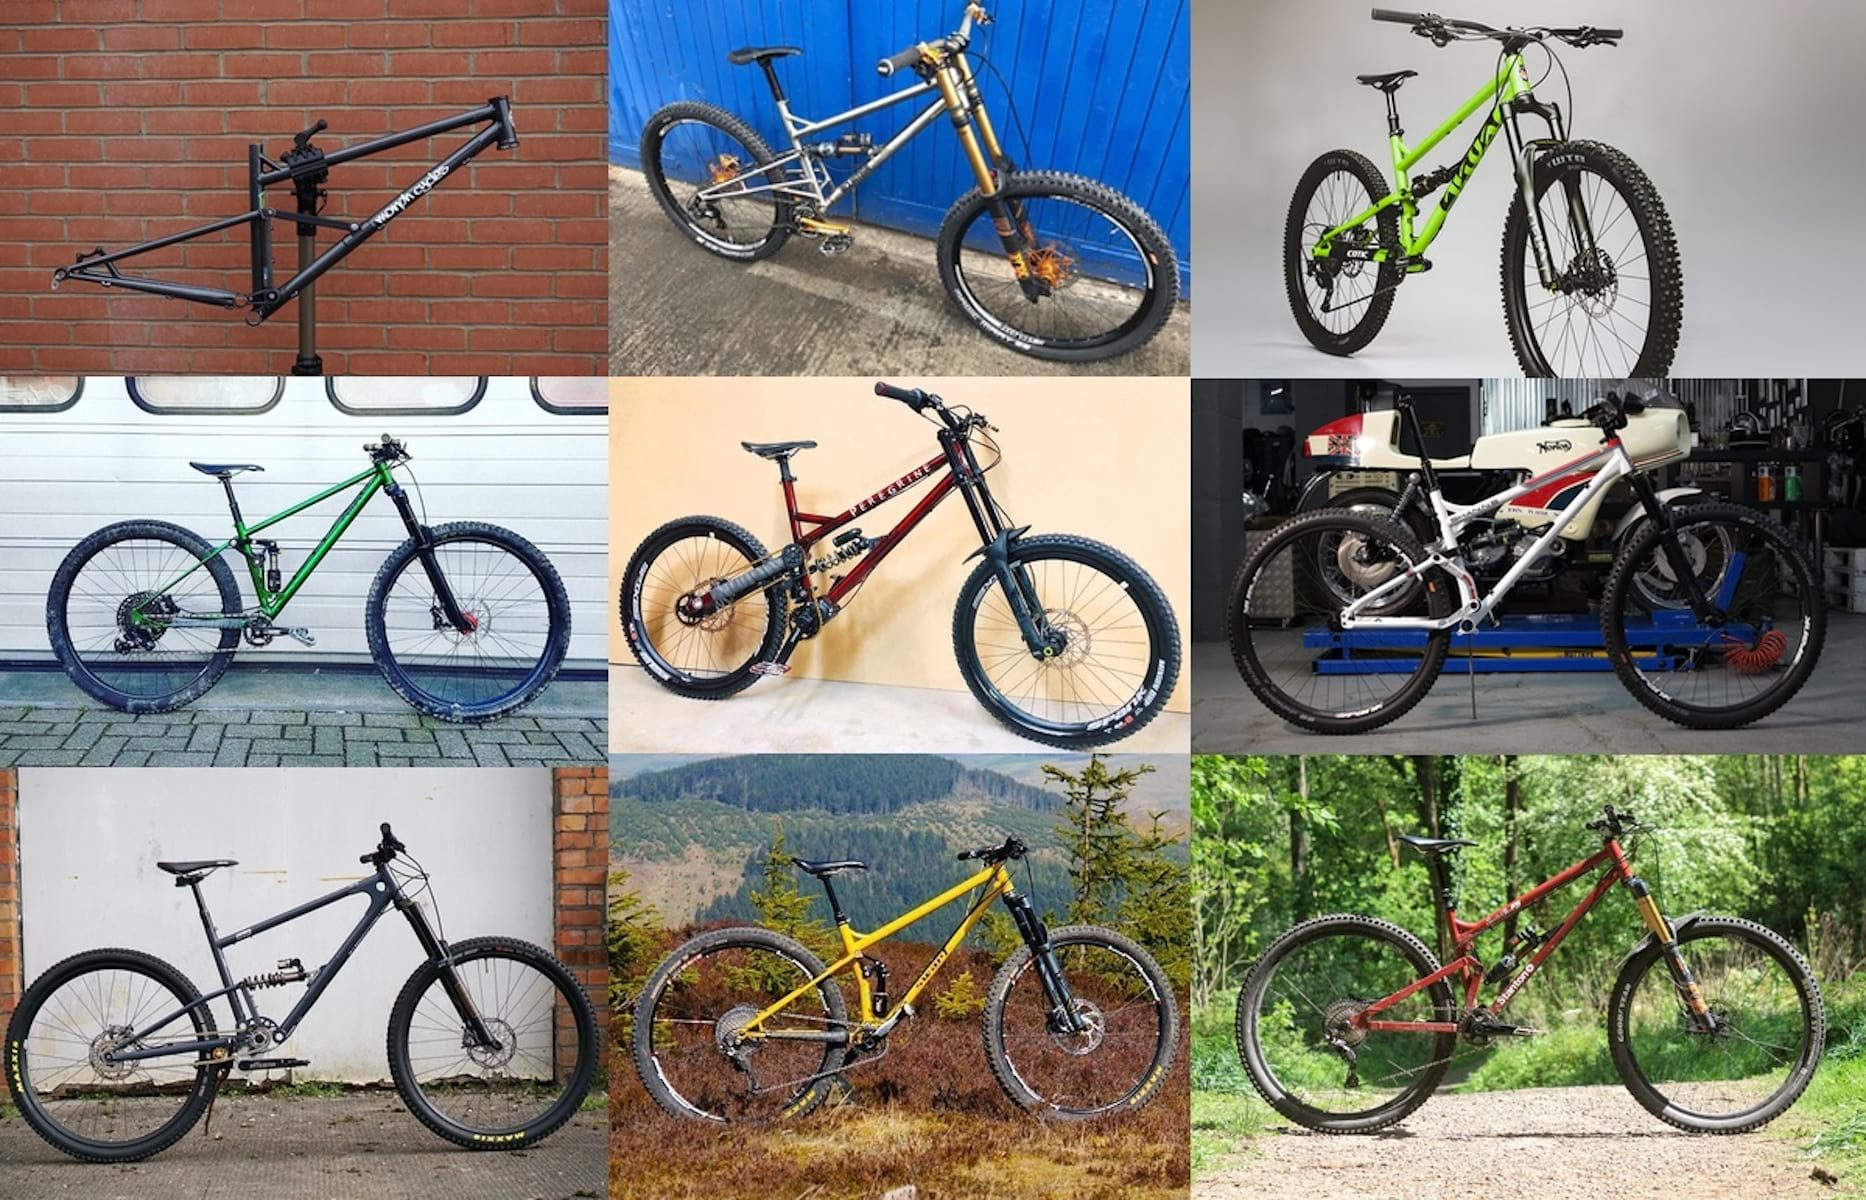 bcf1c35298e 10 More Stunning Steel Full Suspension Bikes You Cannot Ignore